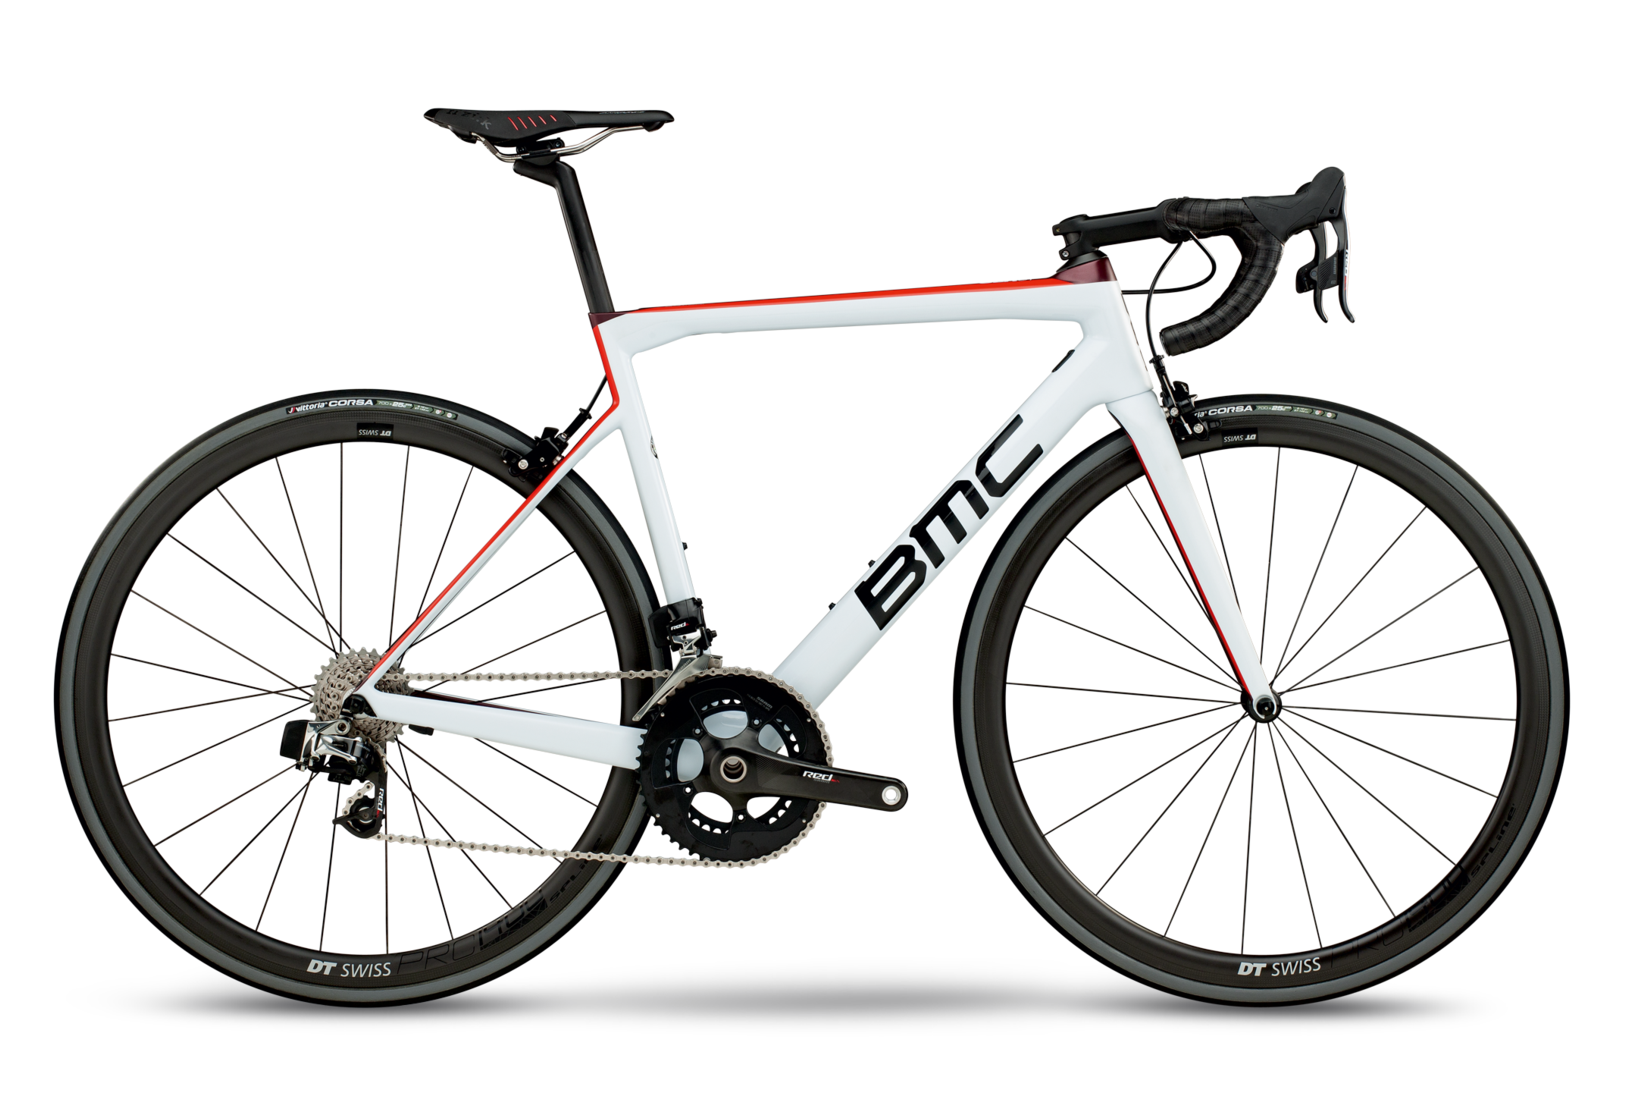 2018 BMC Teammachine SLR01 ONE - Red eTap Road Bike